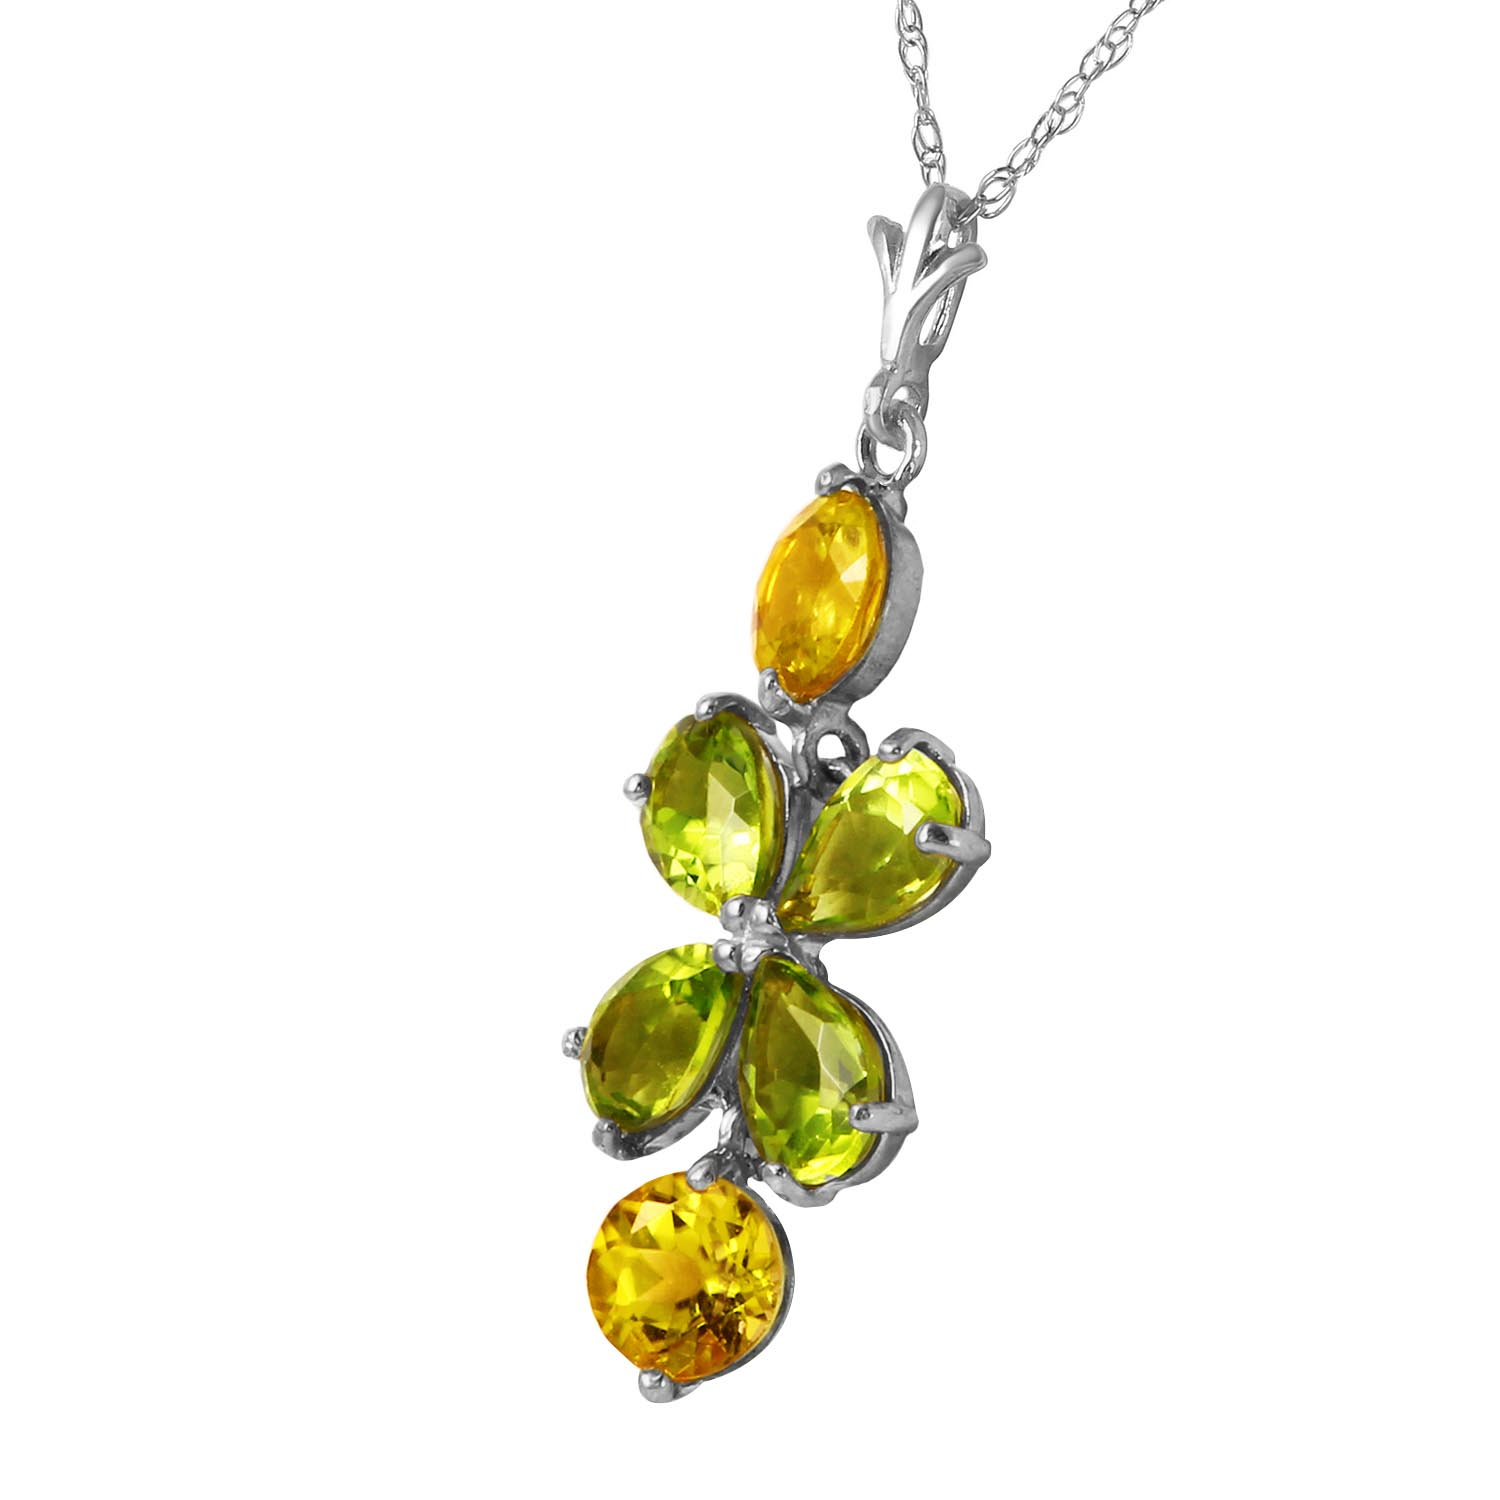 Peridot and Citrine Blossom Pendant Necklace 3.15ctw in 9ct White Gold